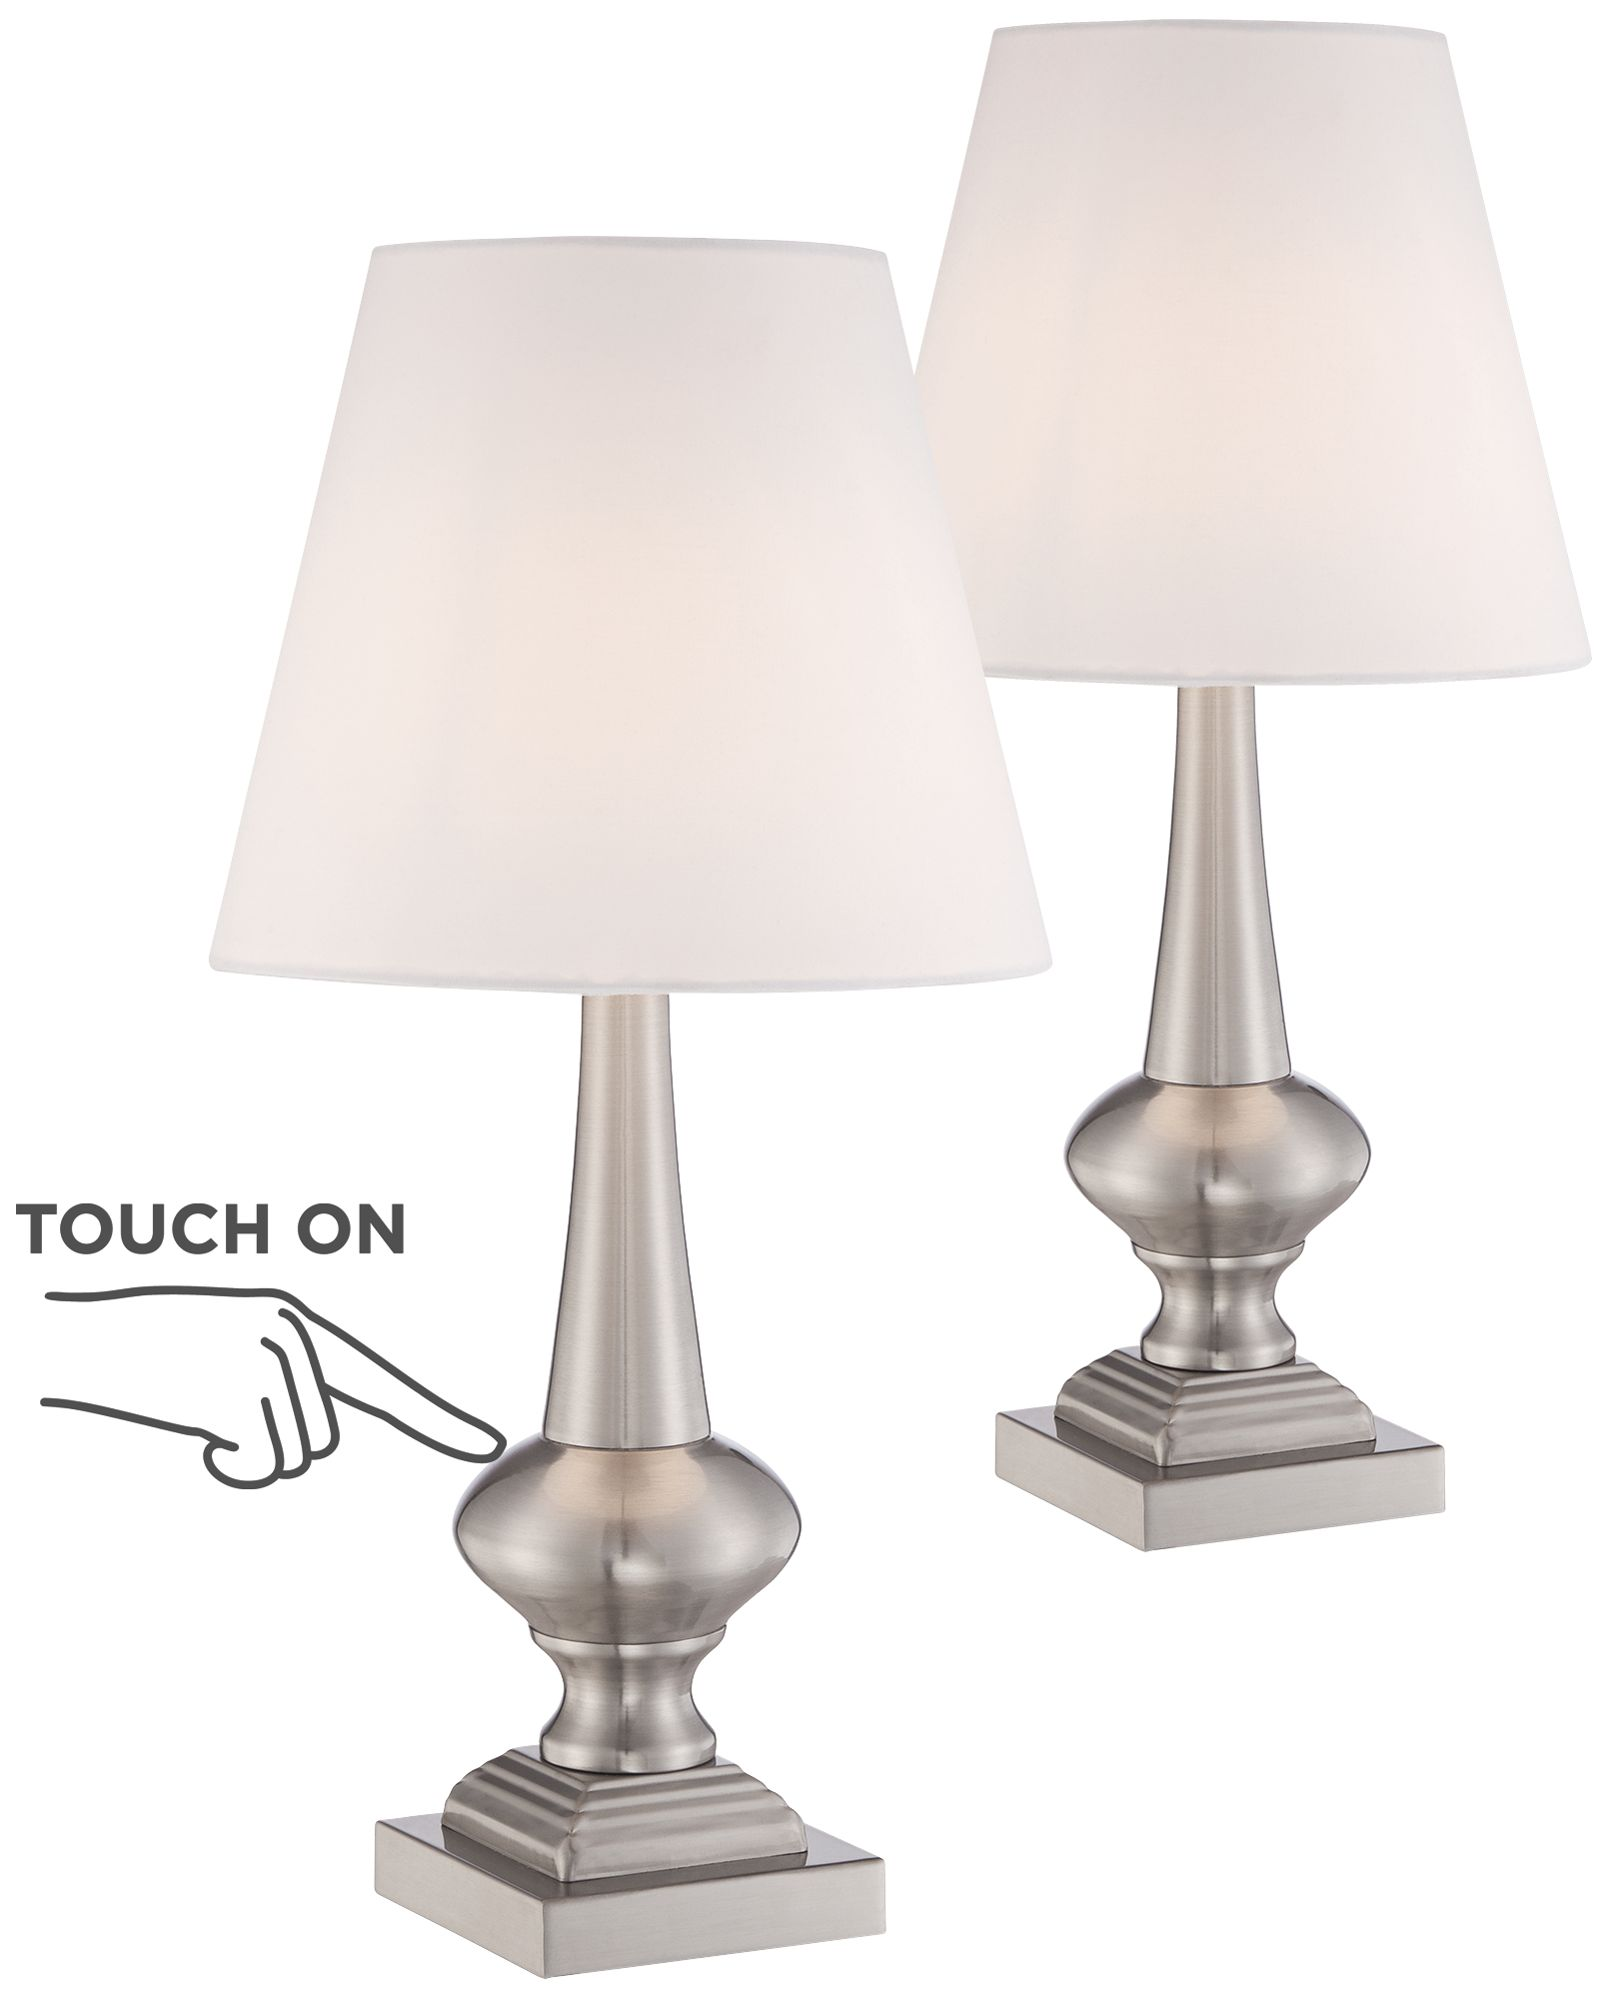 Delicieux Set Of 2 Brooks Brushed Steel Touch On Off Table Lamps